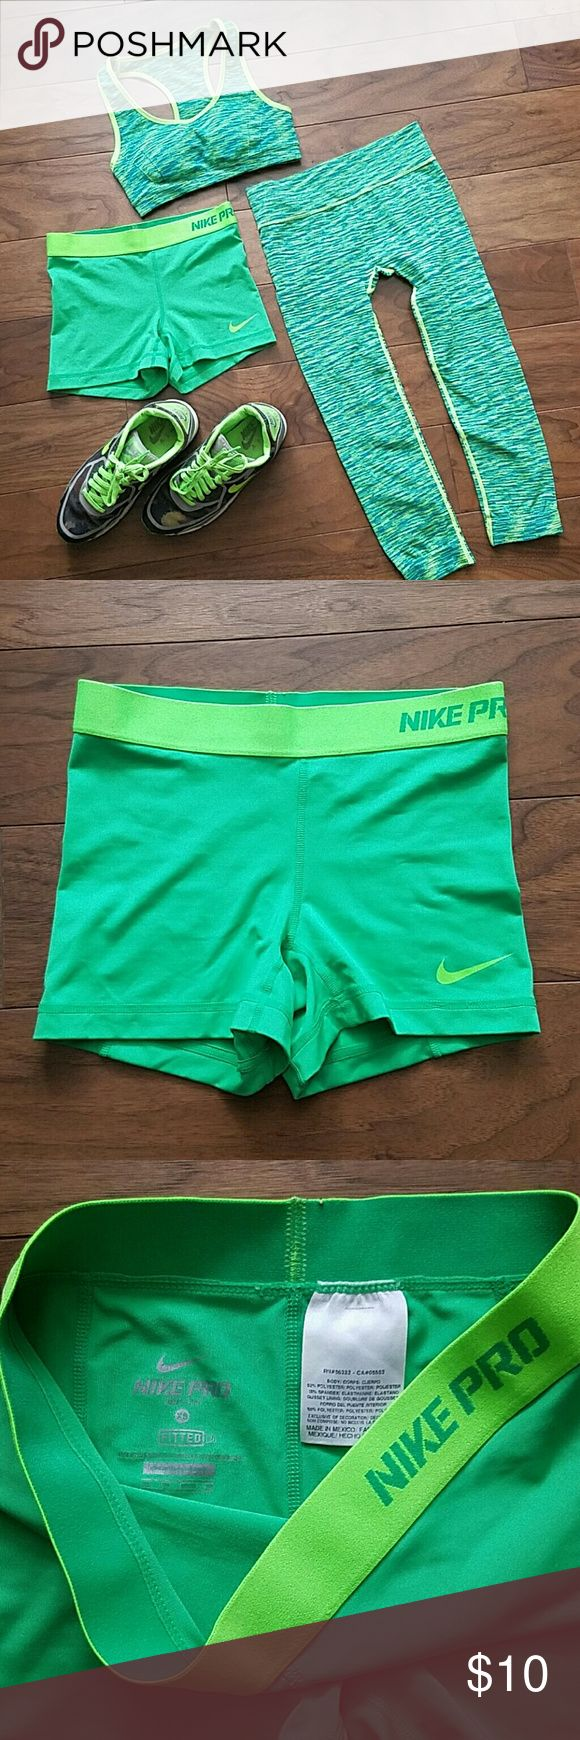 Nike Pro Lime Green Compression Shorts SIZE XS Lime green & neon Yellow Nike Pro Driver Fit compression shorts SIZE XS. Worn twice, no snags, Nike  Shorts